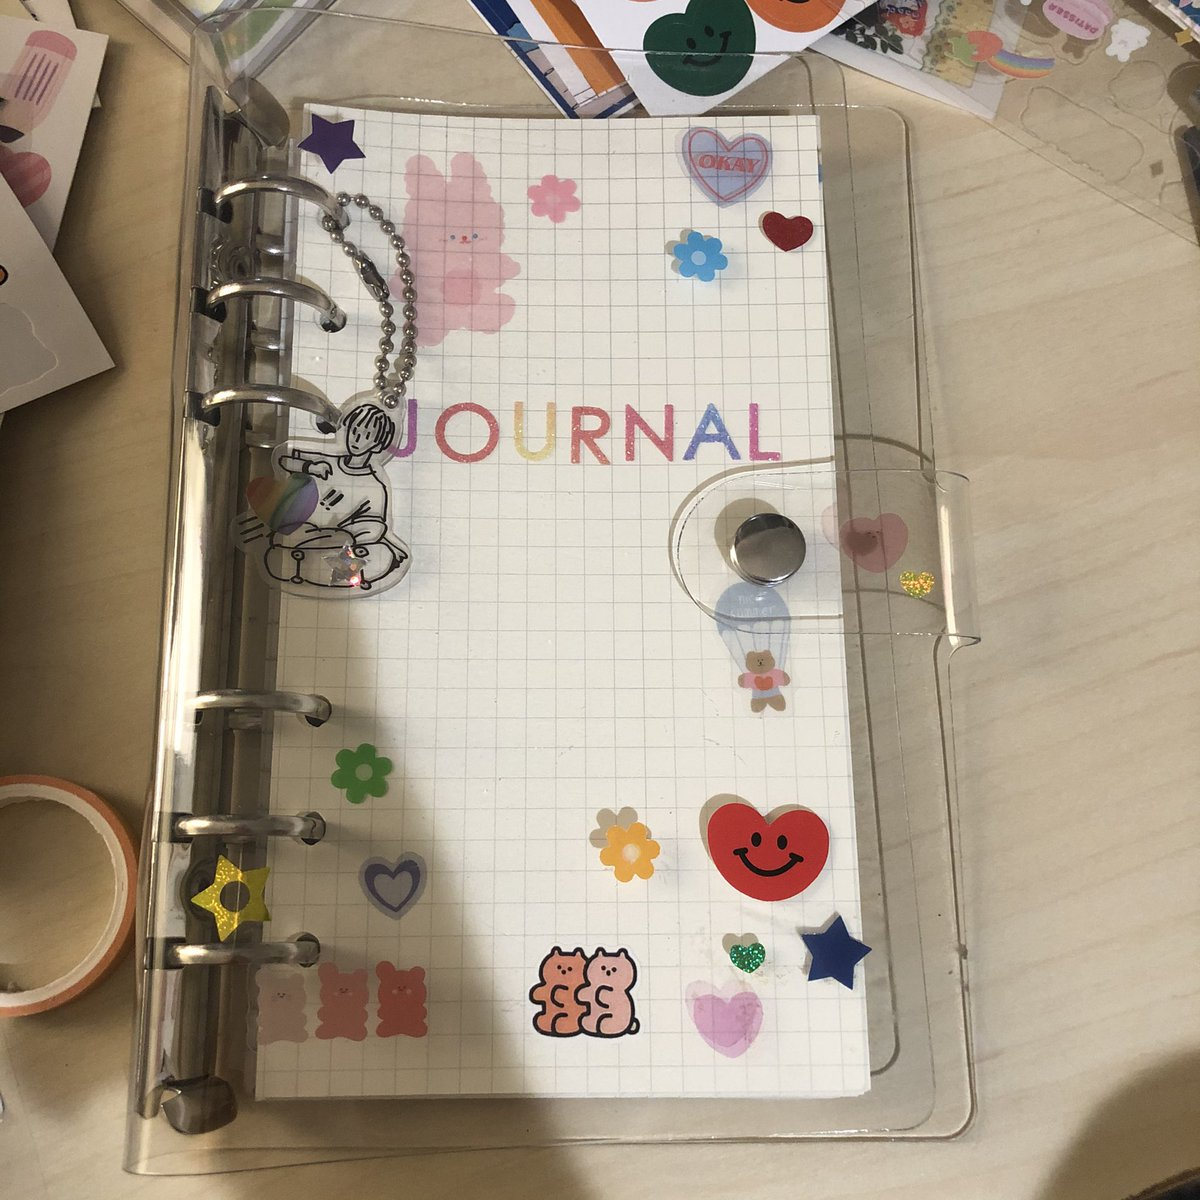 i bought another journal😟 #cool #swag https://t.co/d4Sart0zGe